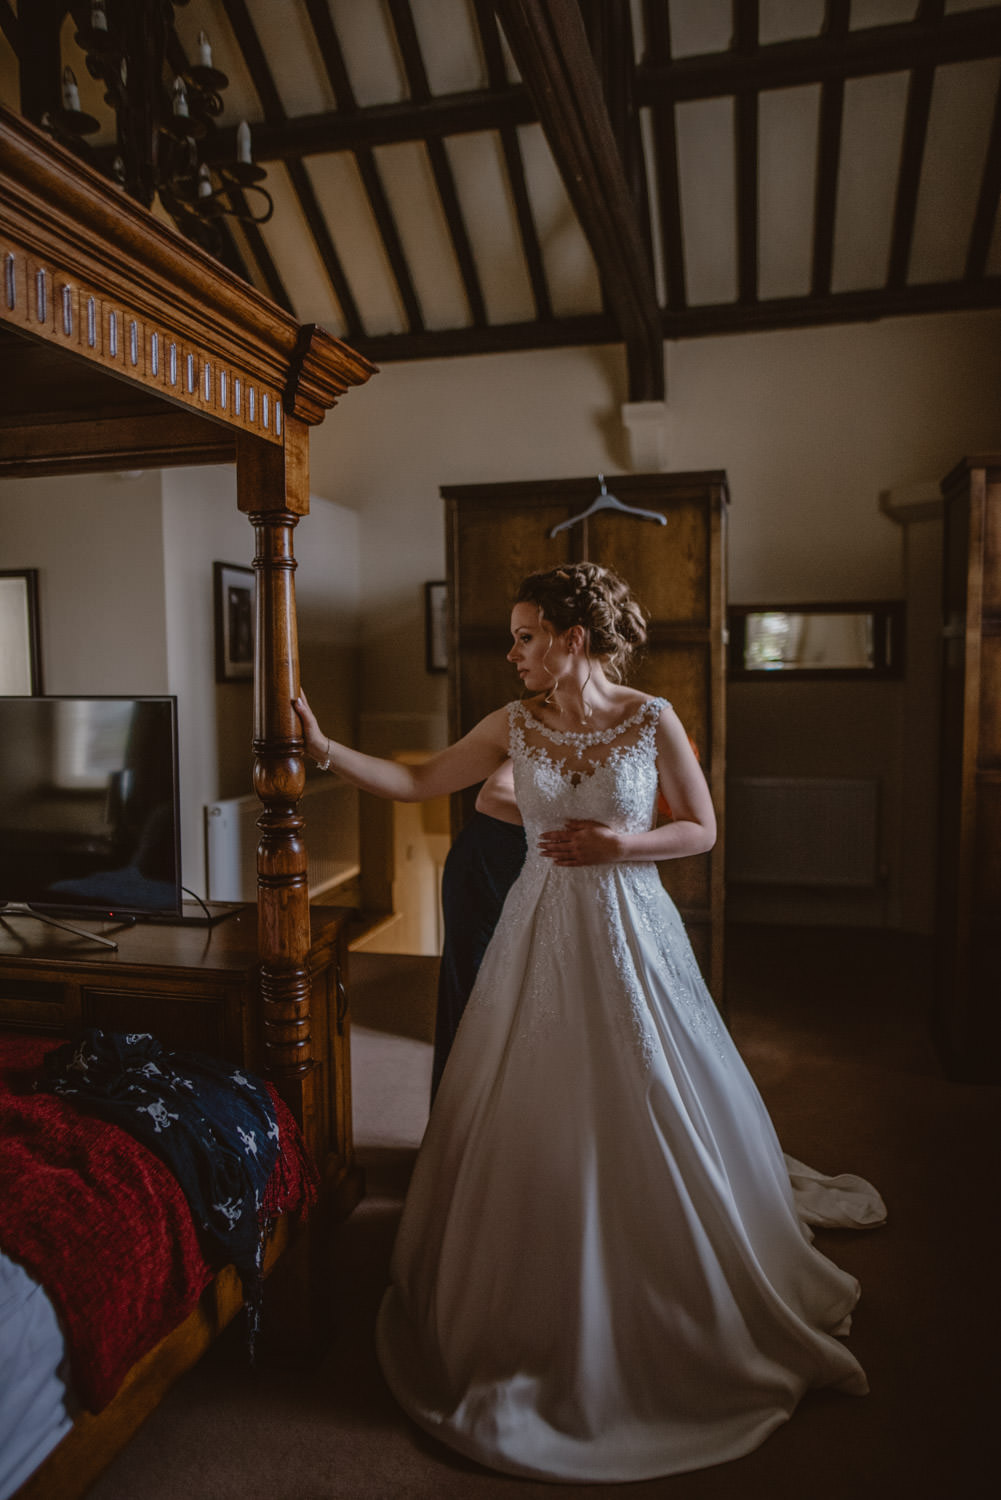 Bride Getting ready at the bridal suite in Peckforton Castle